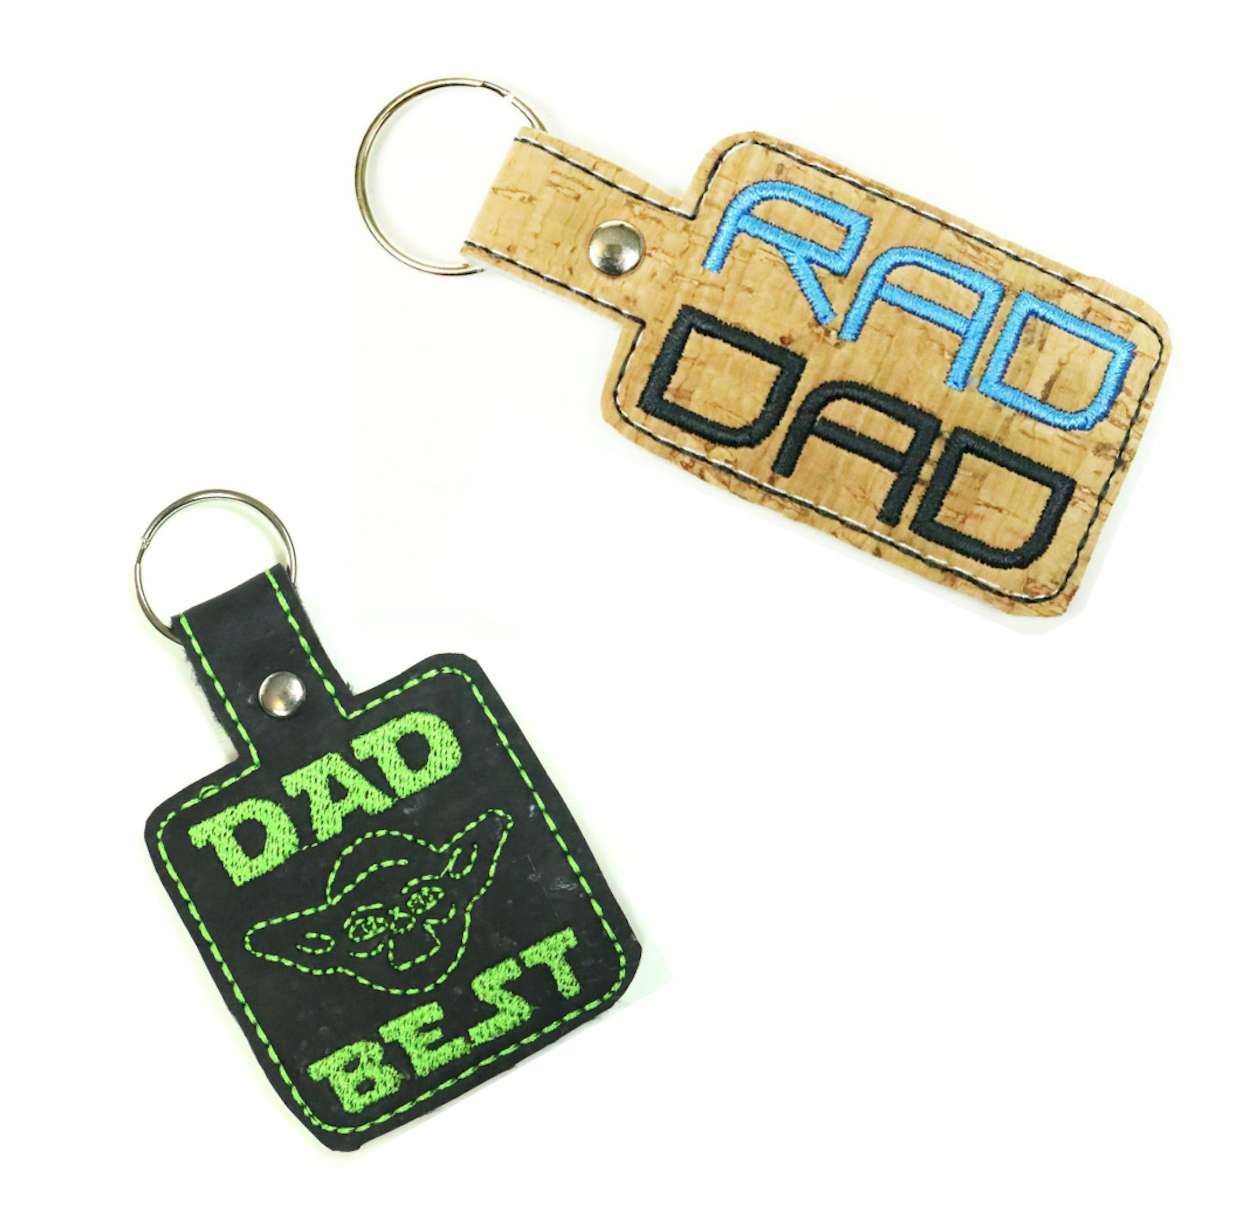 fathersdaykeyfobs.png